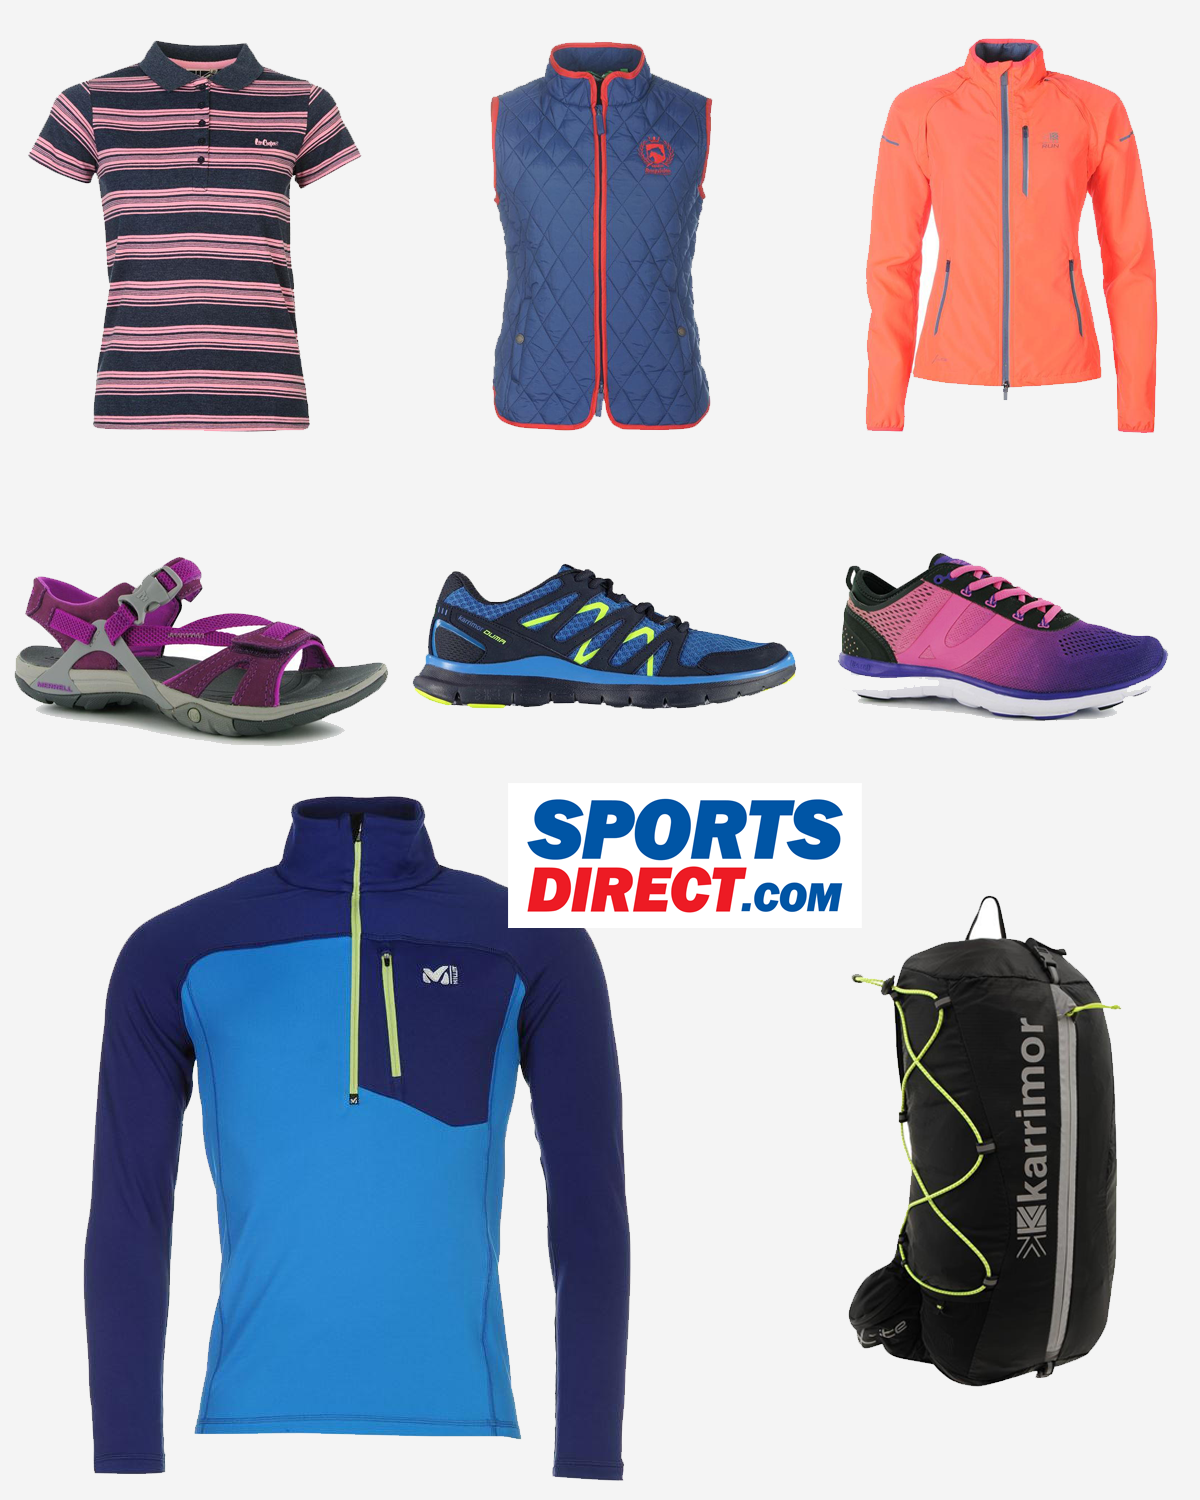 đồ thể thao sportdirect